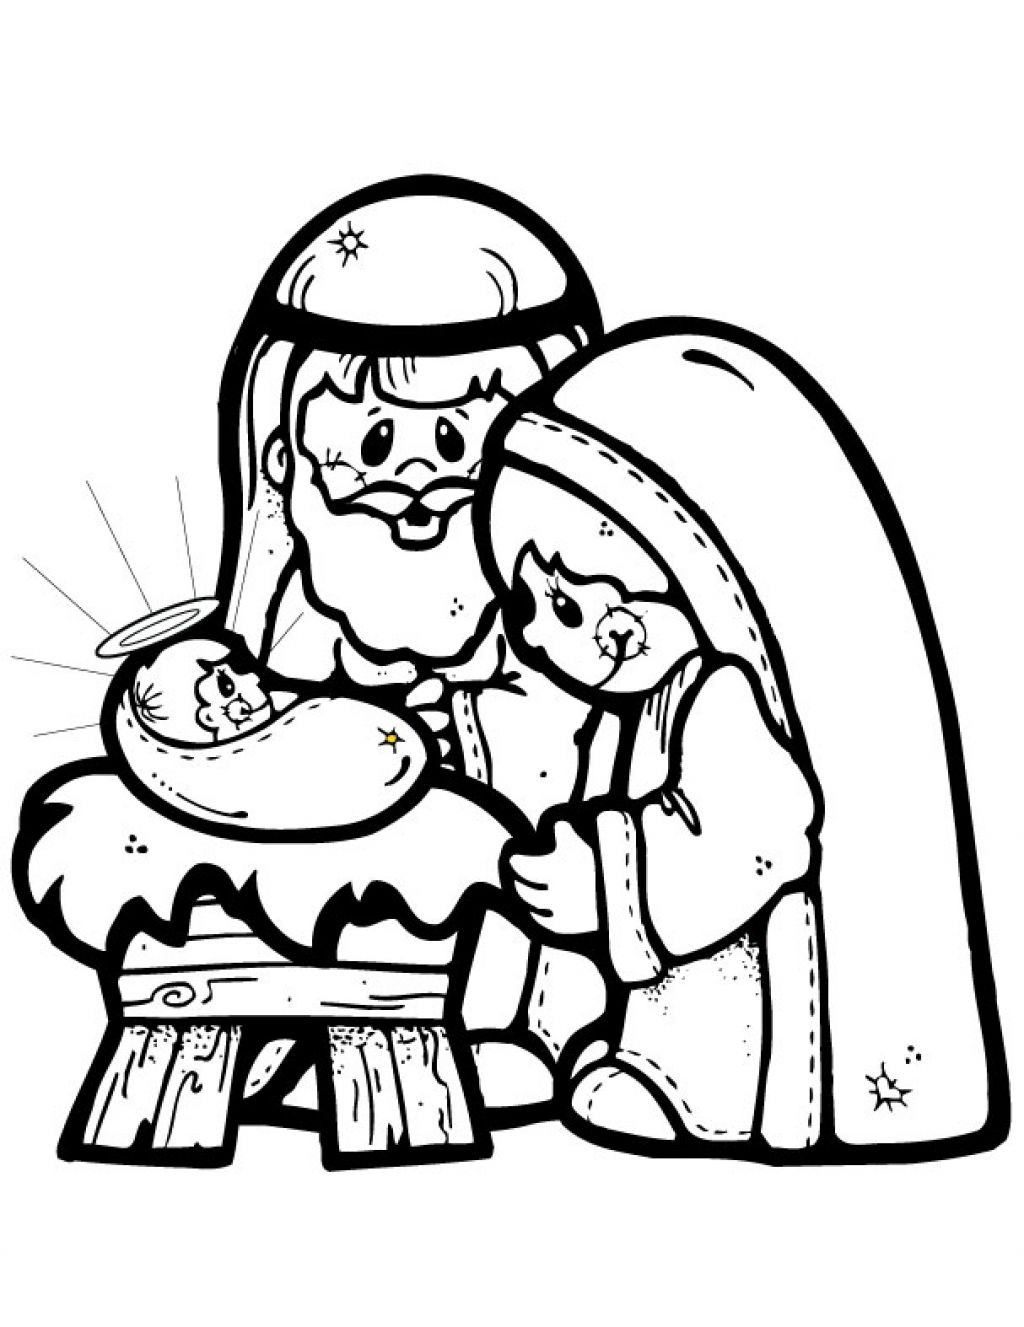 Free Printable Nativity Story Coloring Pages | Free Printable